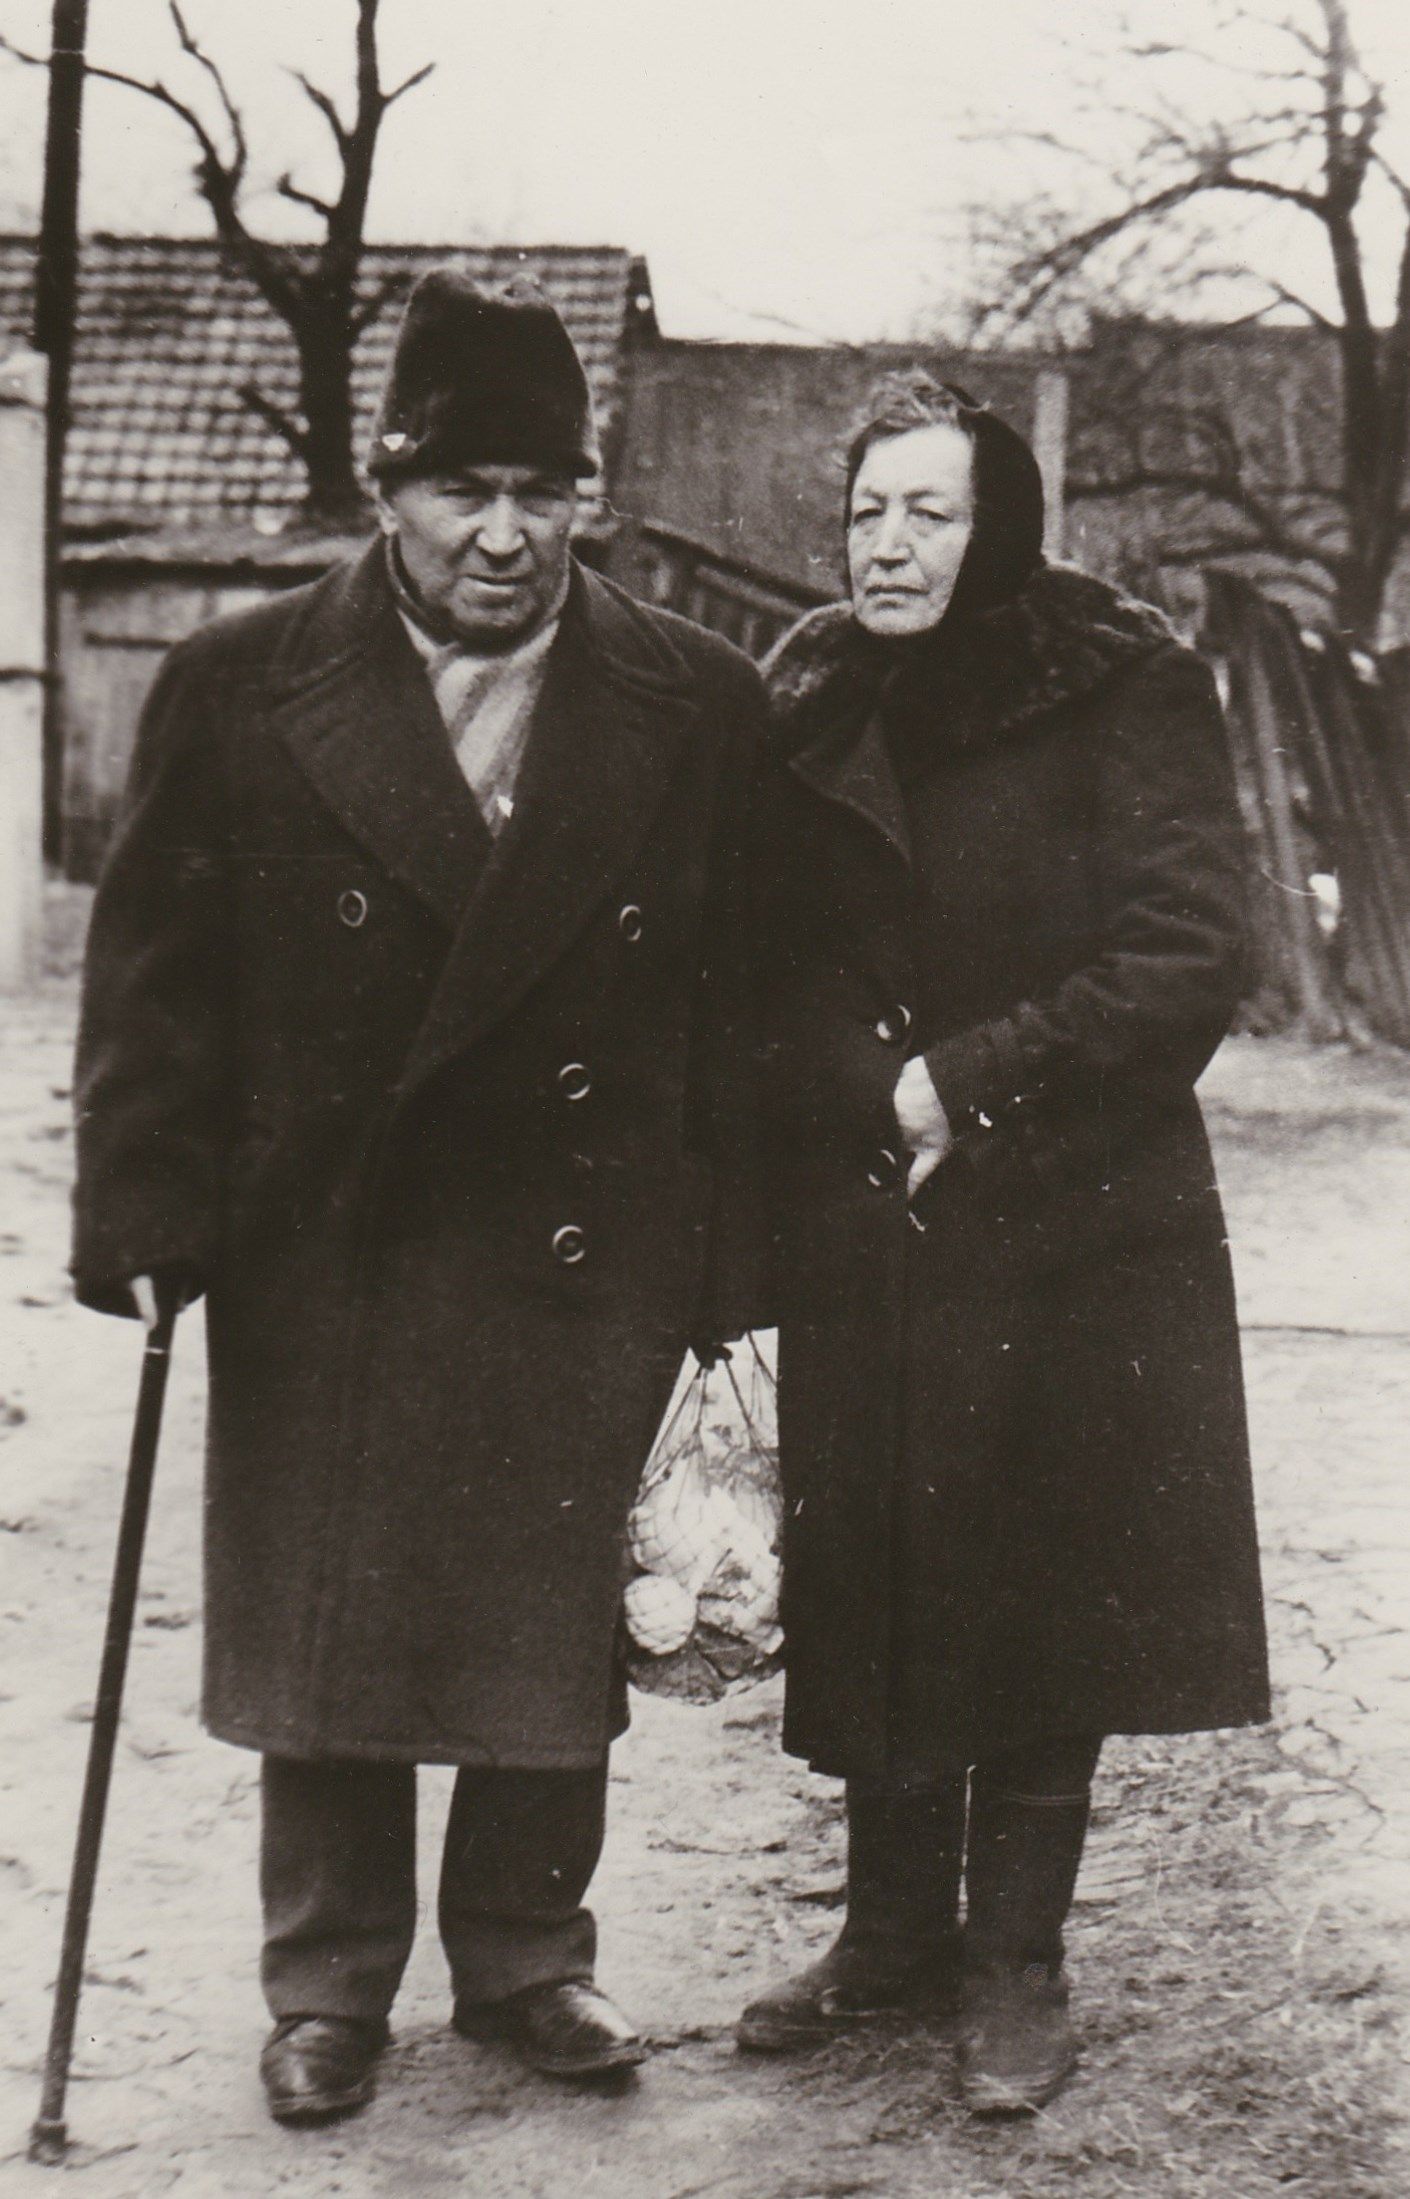 Moisey Yankelevich Shapiro (1899-1976) with sister Freidl Yankelevna Ferdman (1904-1978) in Khabno, 1960's. Photo provided by Gennadiy Smolyansky